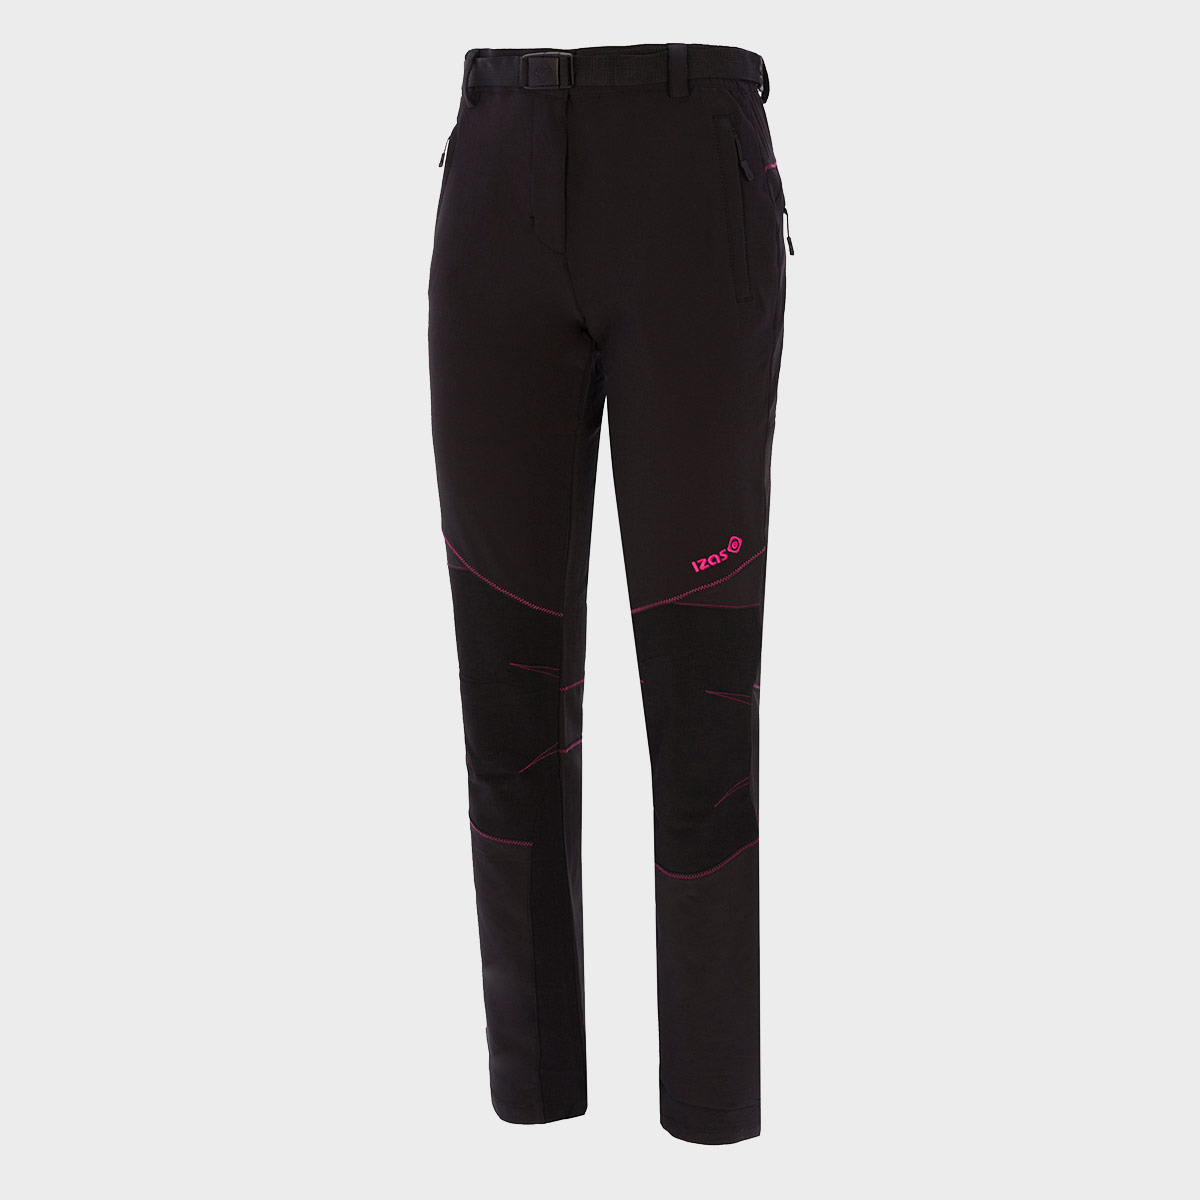 WOMAN'S ANCONA MOUNT STRETCH PANT BLACK